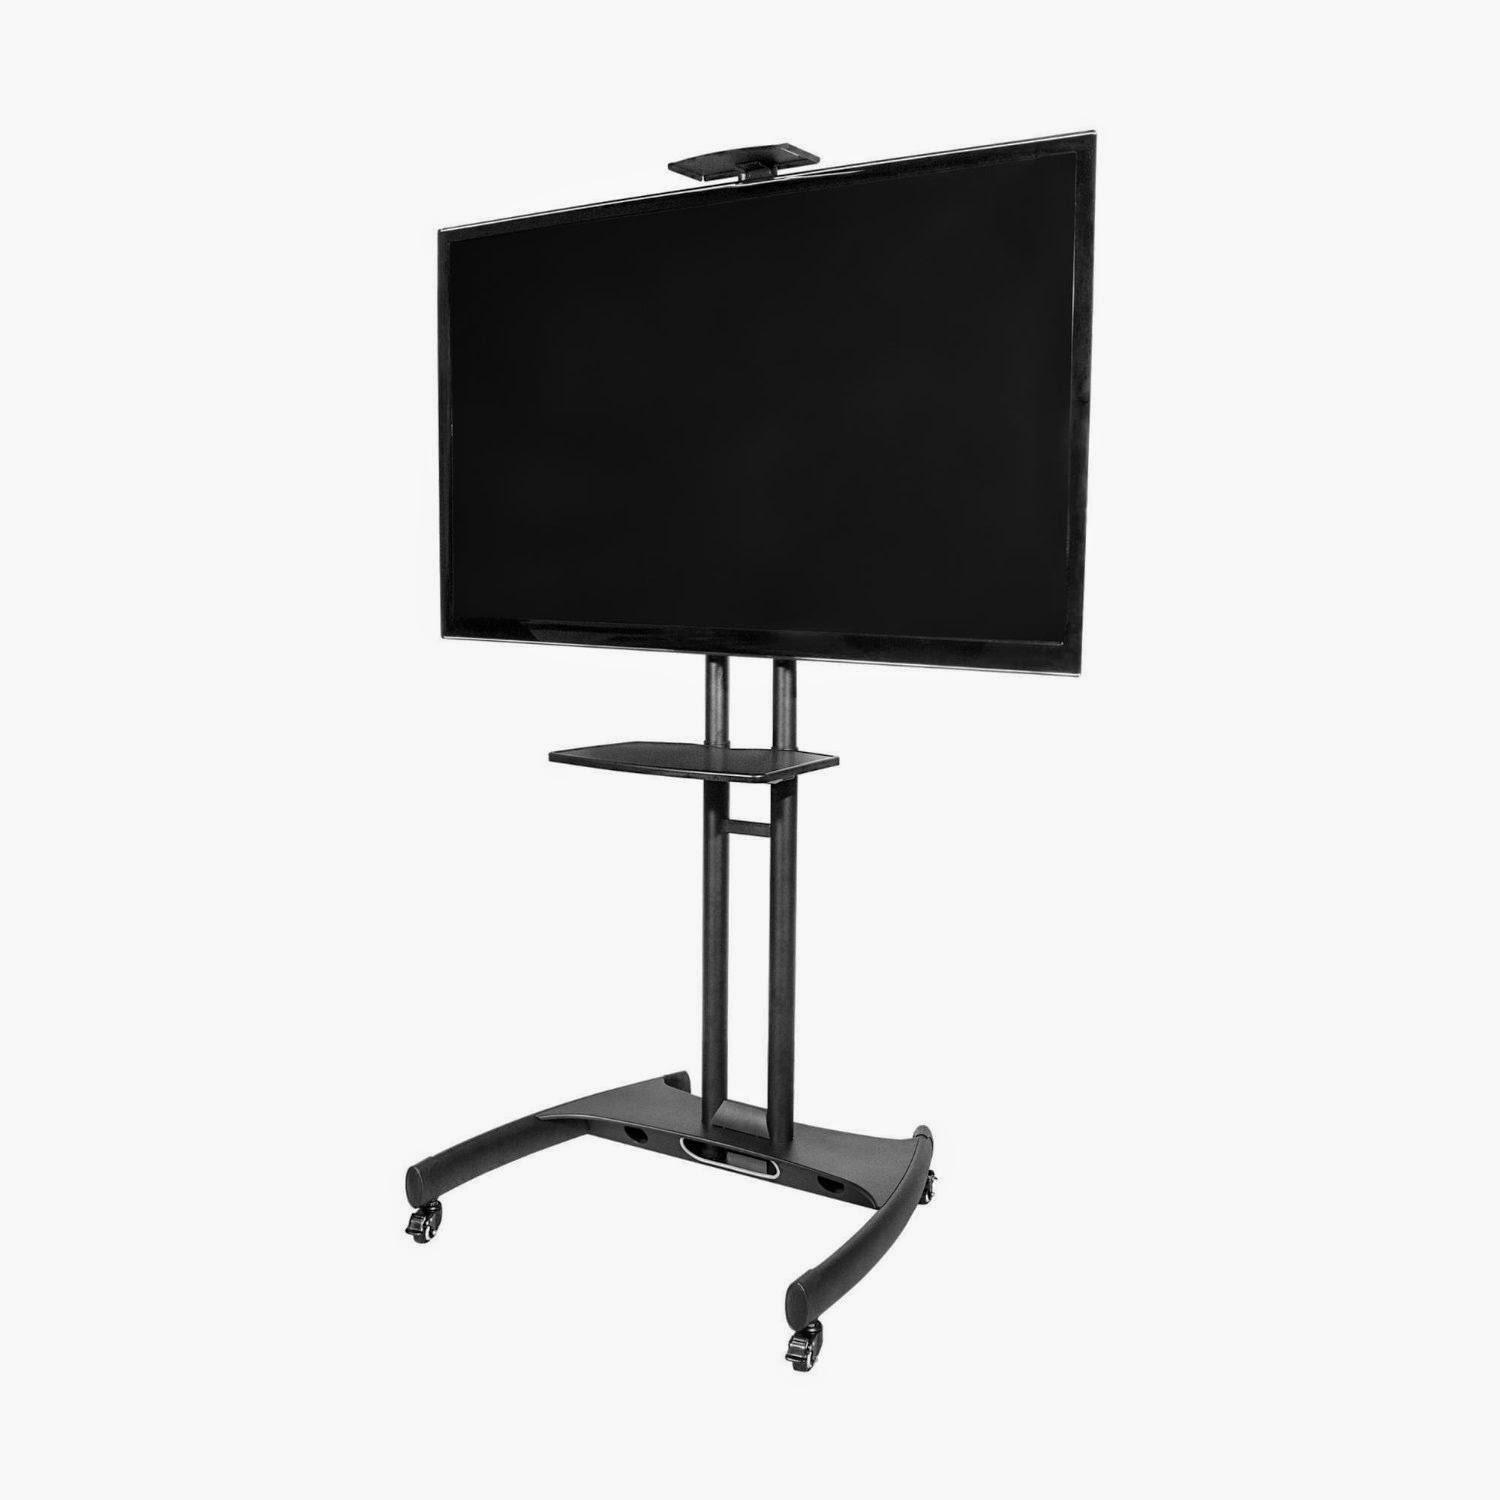 2017 Kanto Mtm65pl Mobile Stand Inch Flat